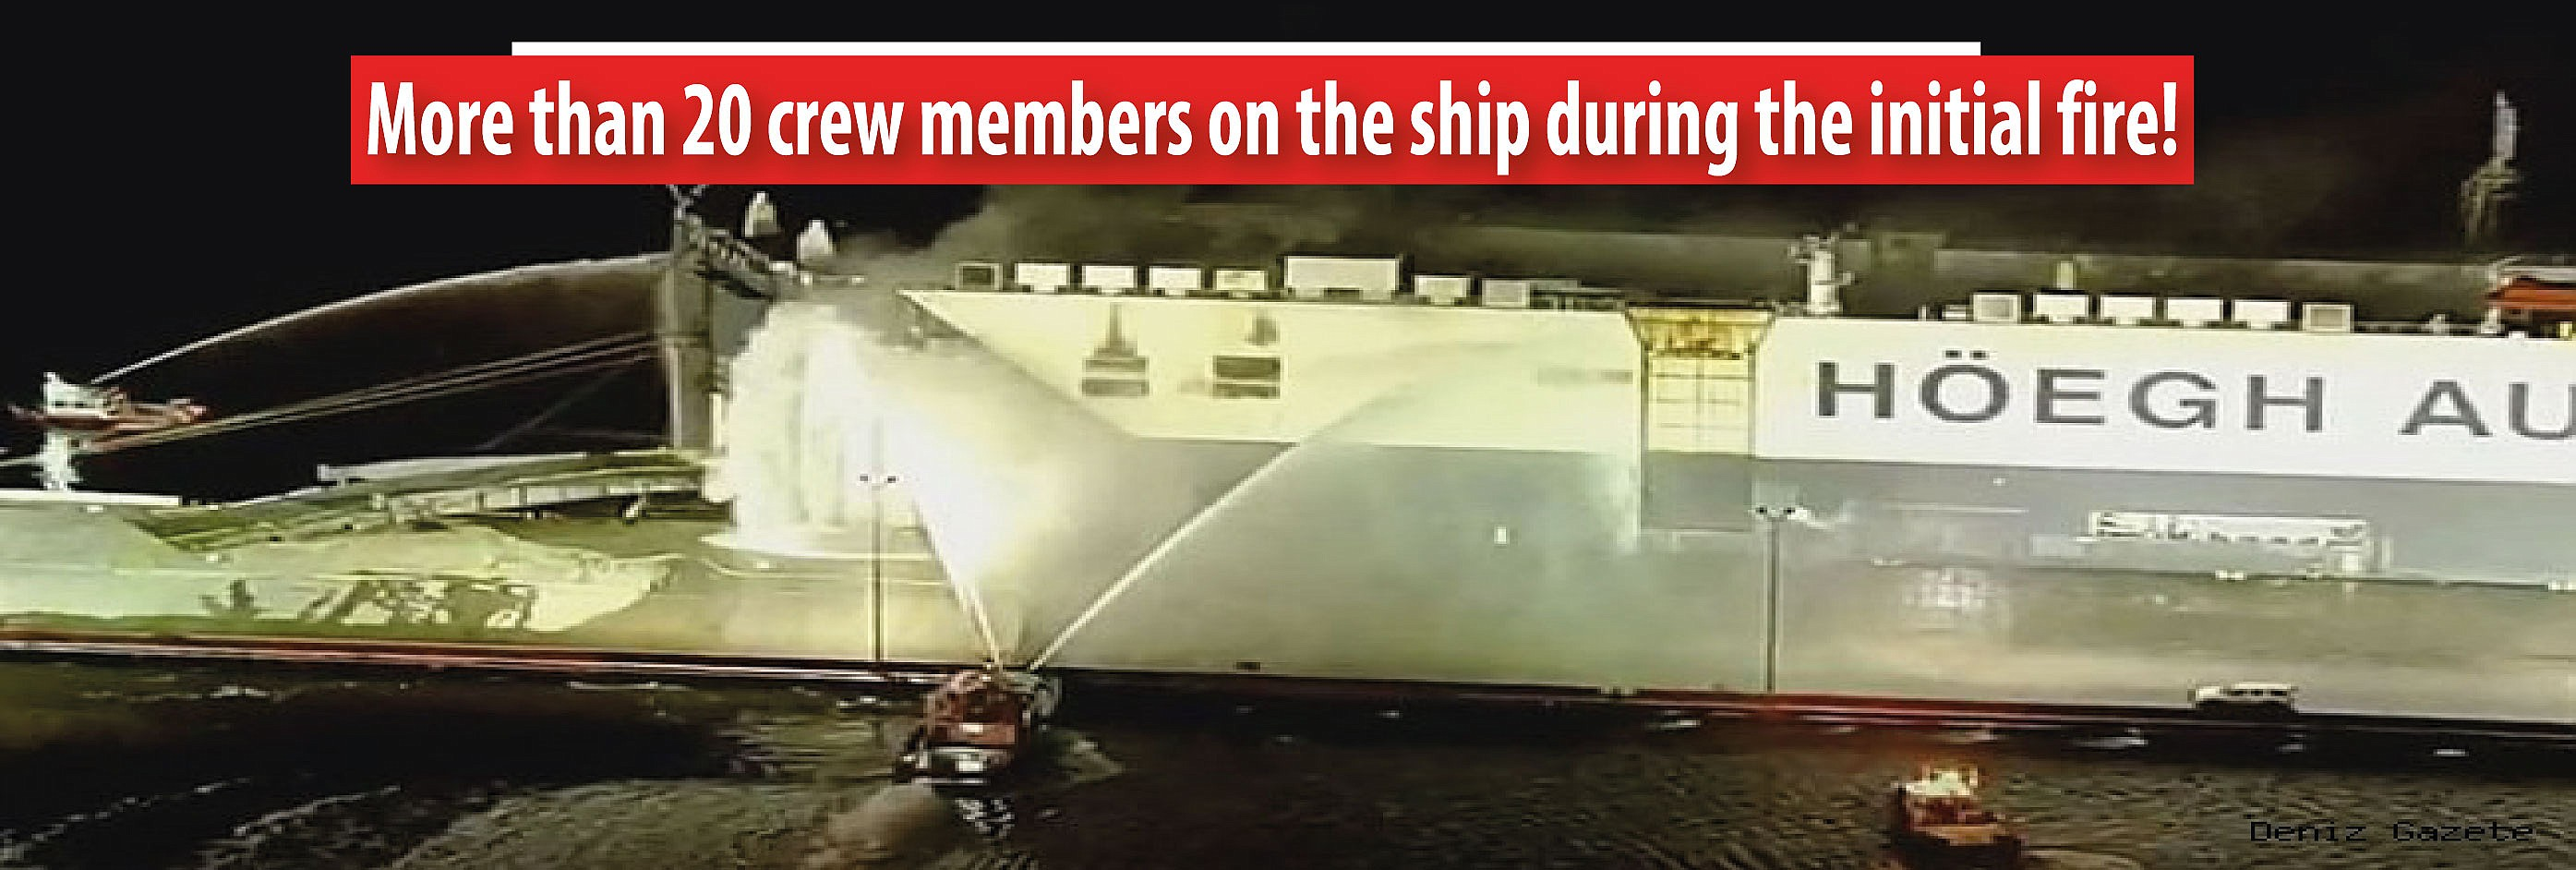 9 Firefighters Hospitalized in Florida After Ship Explosion!